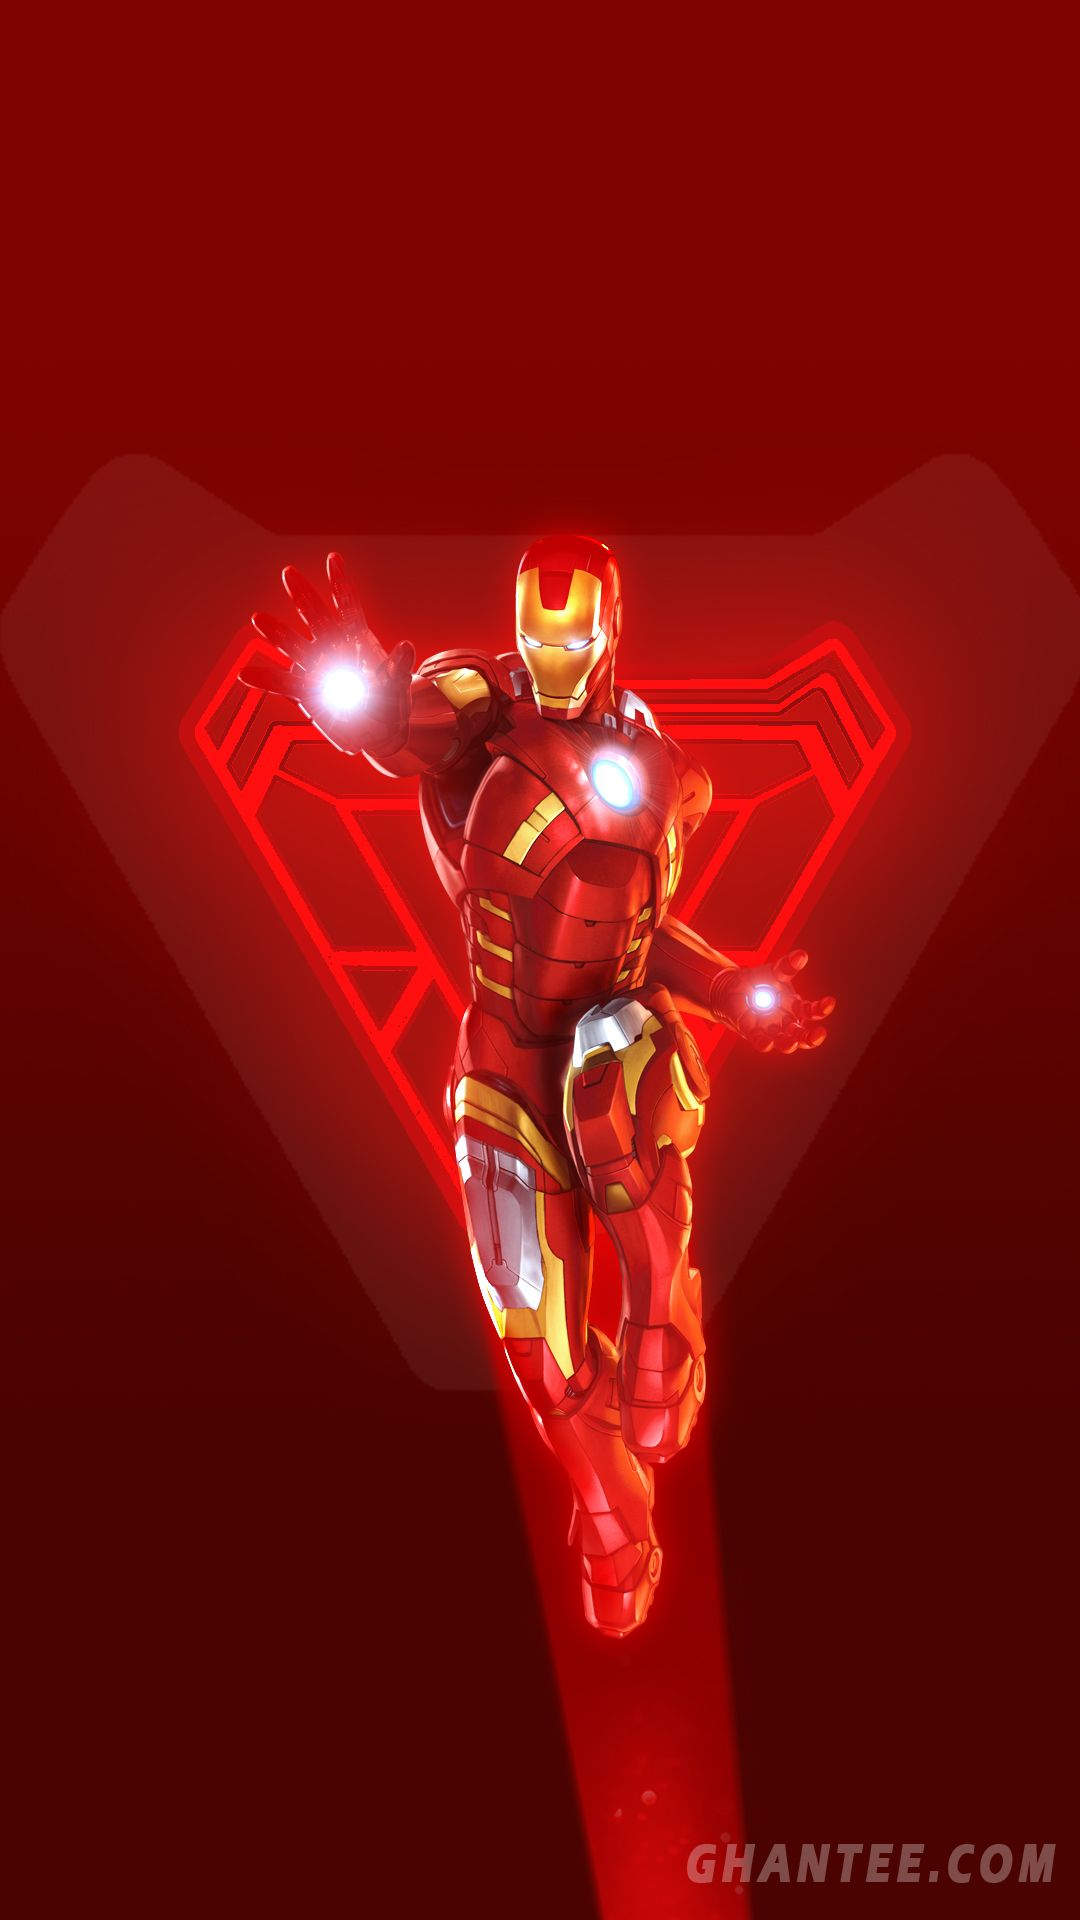 Movies Iphone 6 Plus Wallpapers Iron Man Arc Reactor Glow Iphone 6 Plus Hd Wallpaper Iron Man Wallpaper Ironman Wallpapers Iron Man Arc Reactor